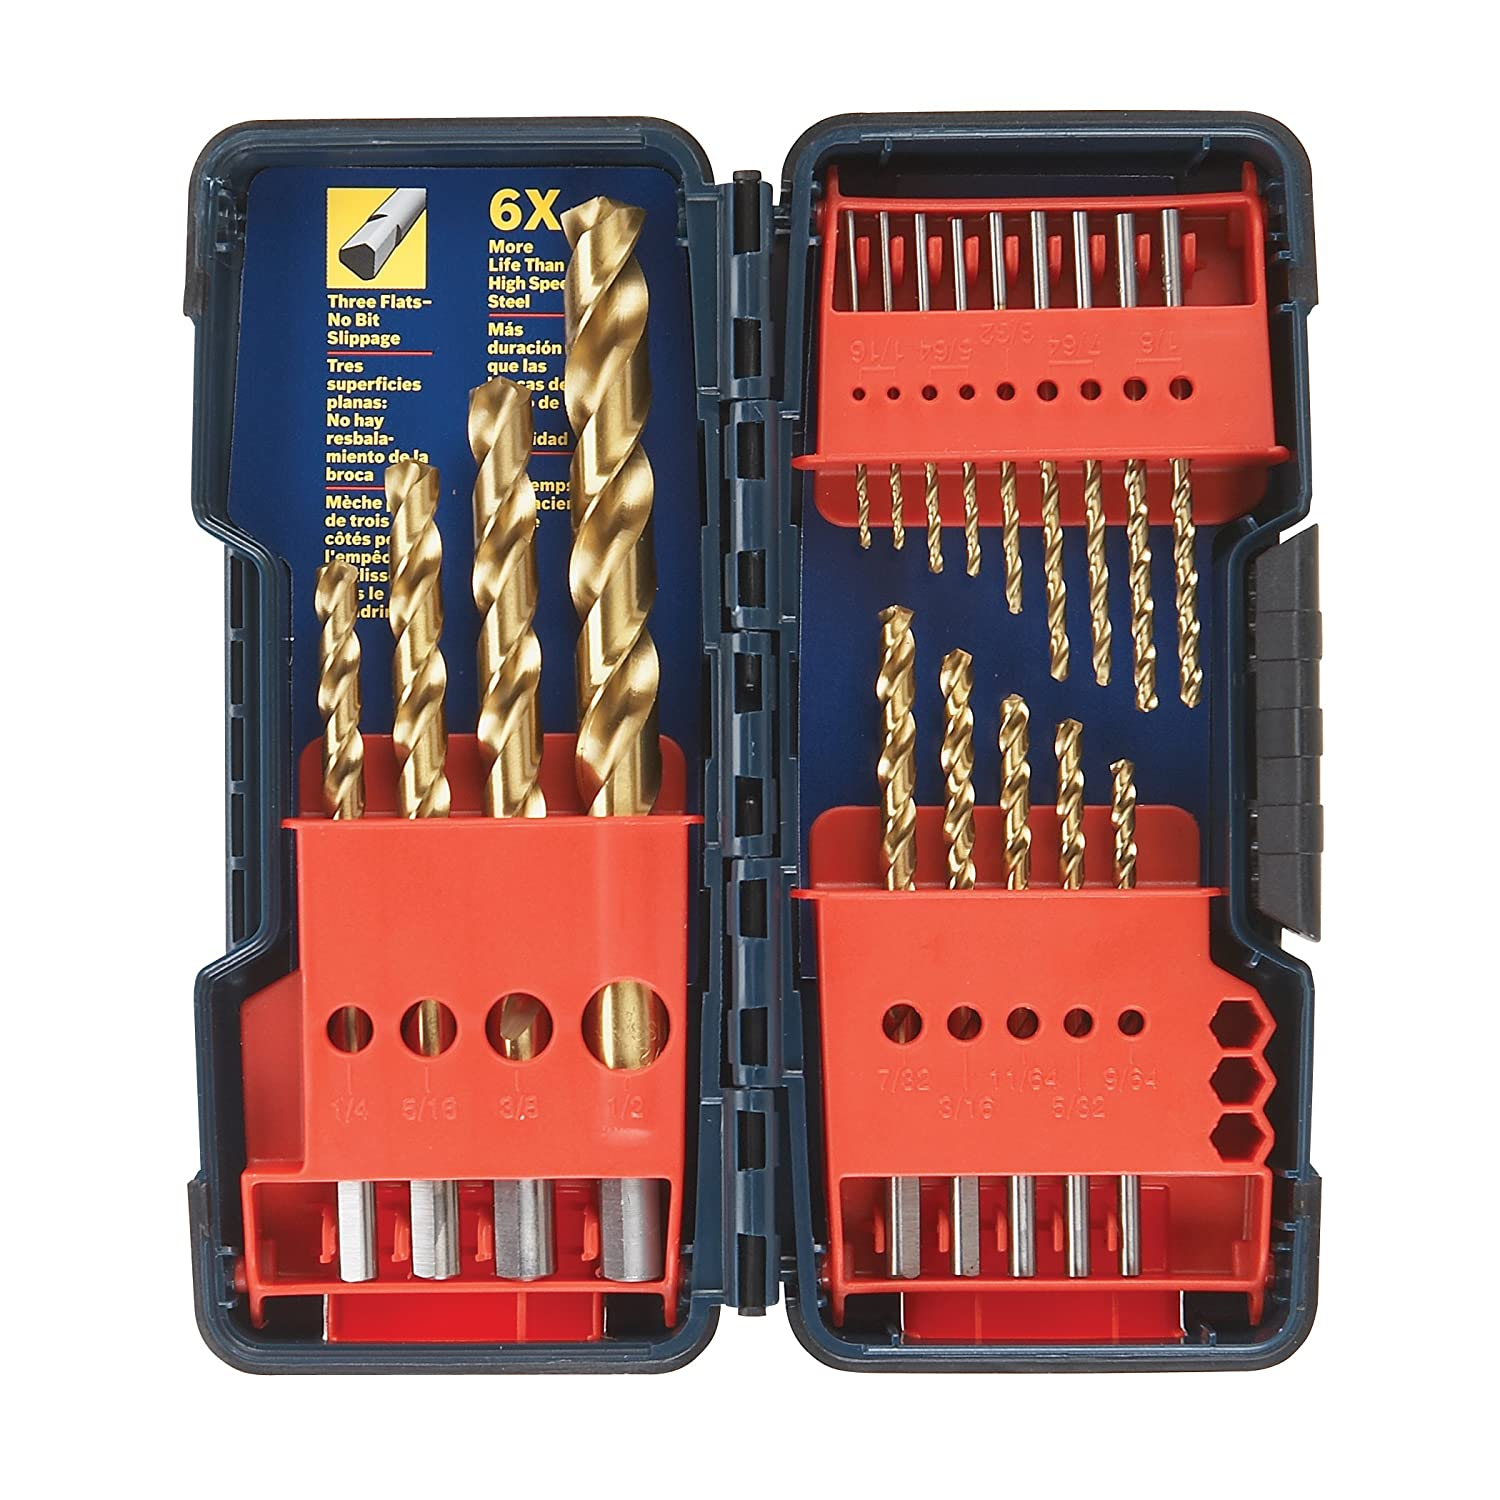 Bosch TI18 18-Piece Titanium Twist Drill Bit Set with Plastic Case $19.75